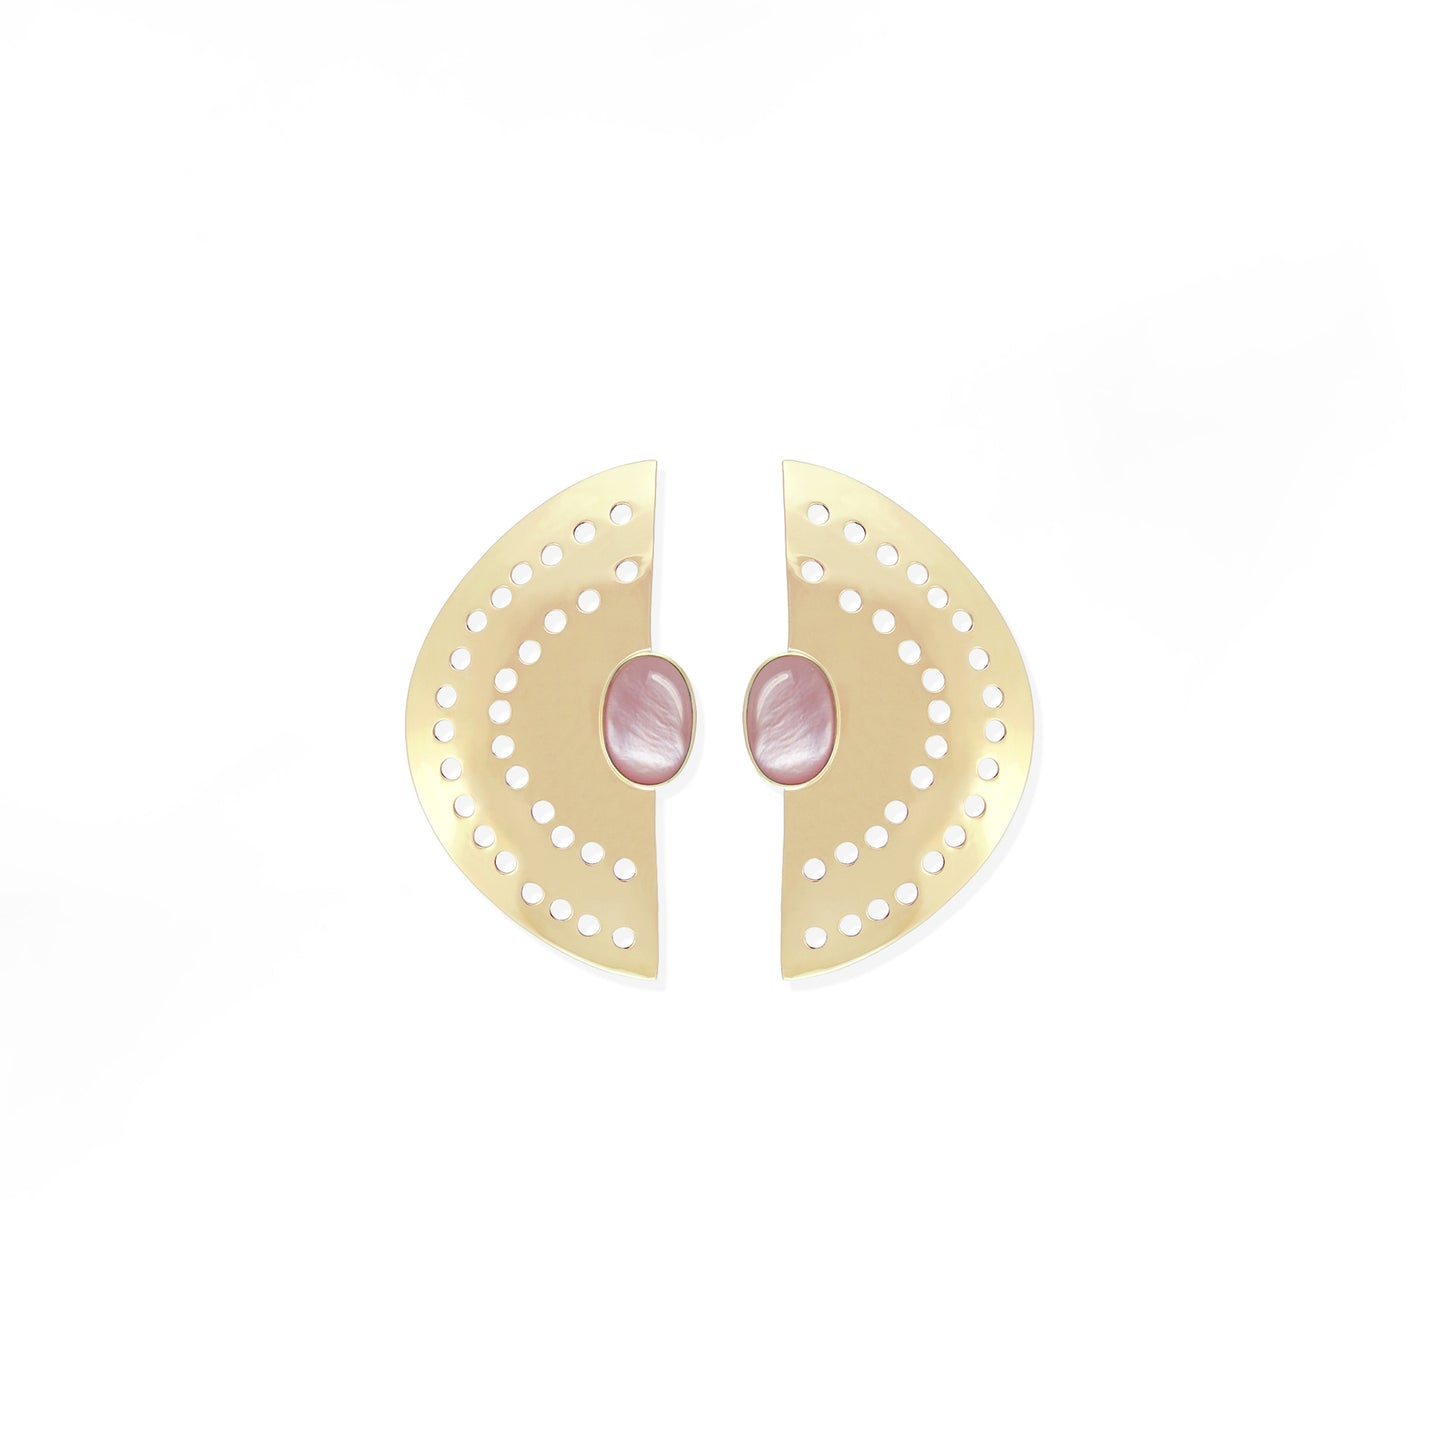 Vintage Half Moon Earrings -  Pink Shell